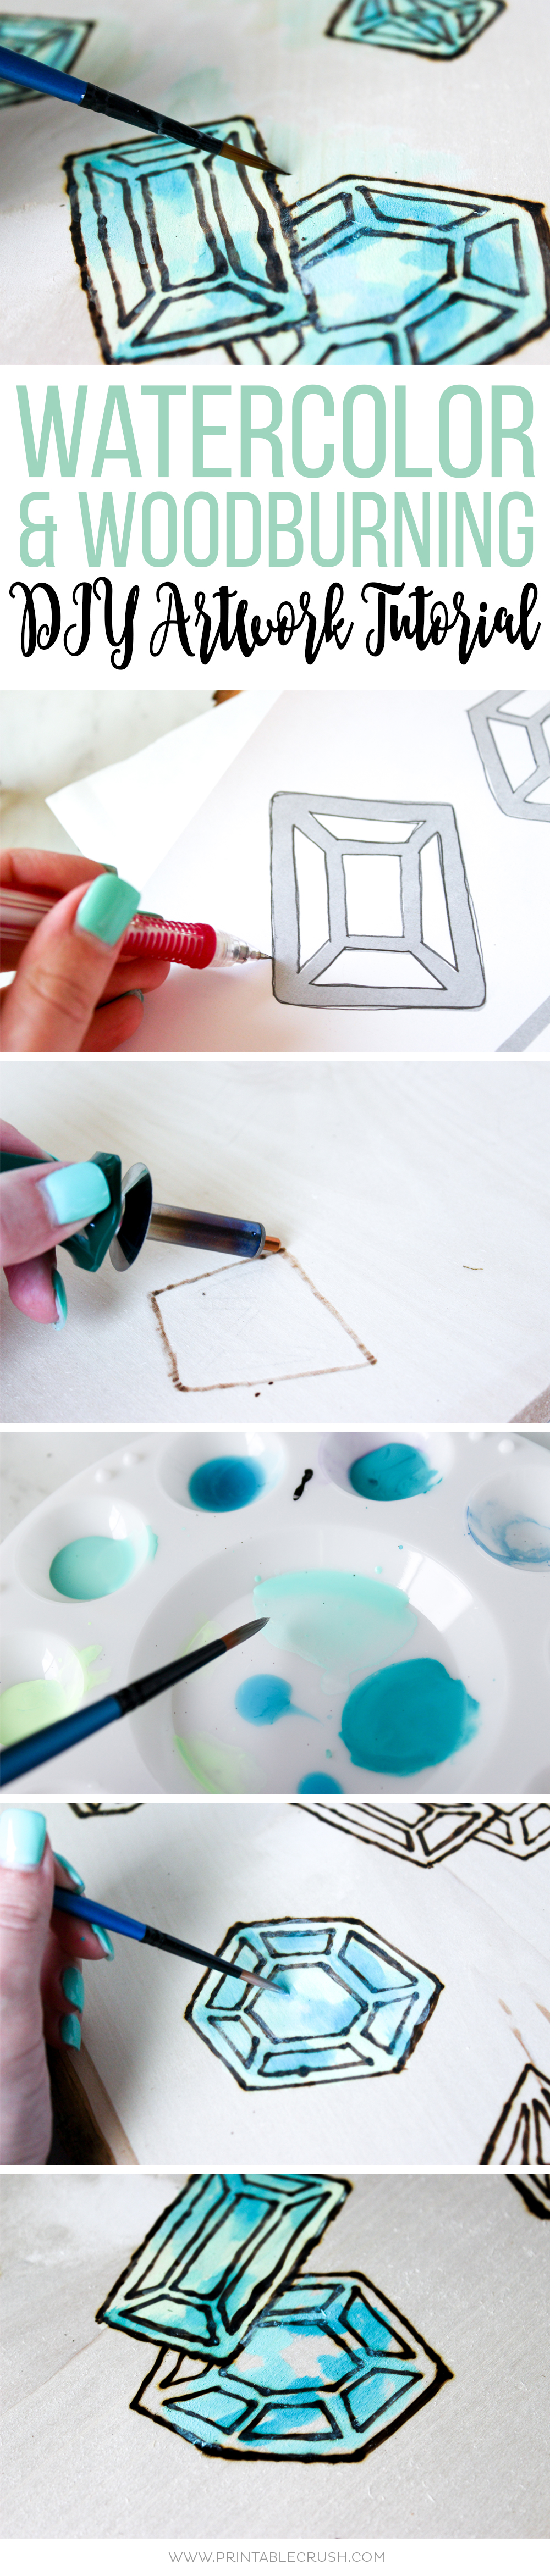 If you want a gorgeous piece of art in your home, follow this Watercolor and Woodburning DIY Artwork Tutorial. It's easy for a beginner or advanced artist!